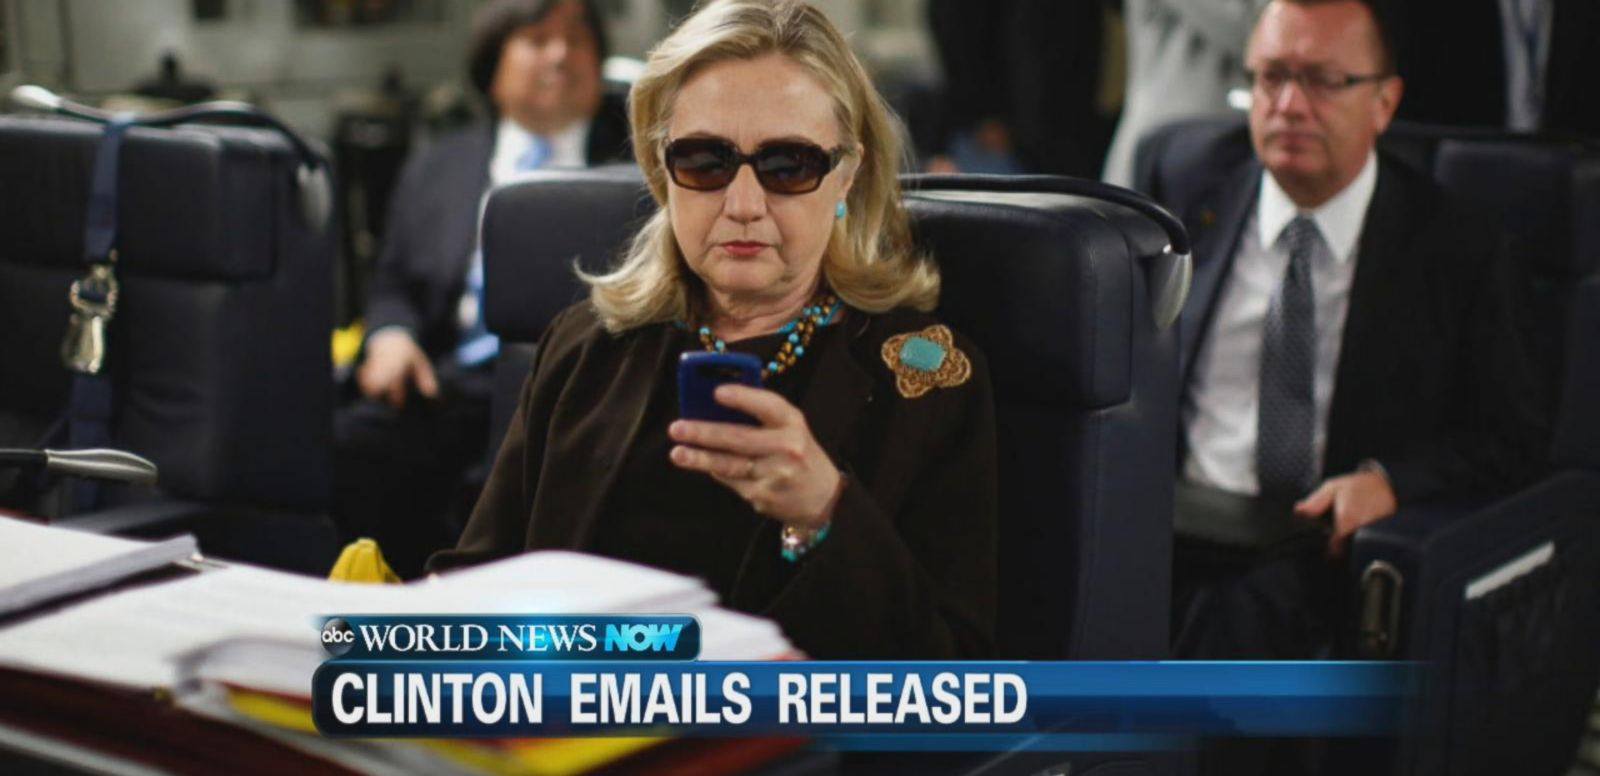 VIDEO: More than 7,000 of Hillary Clinton's emails were released Monday night by the State Department.